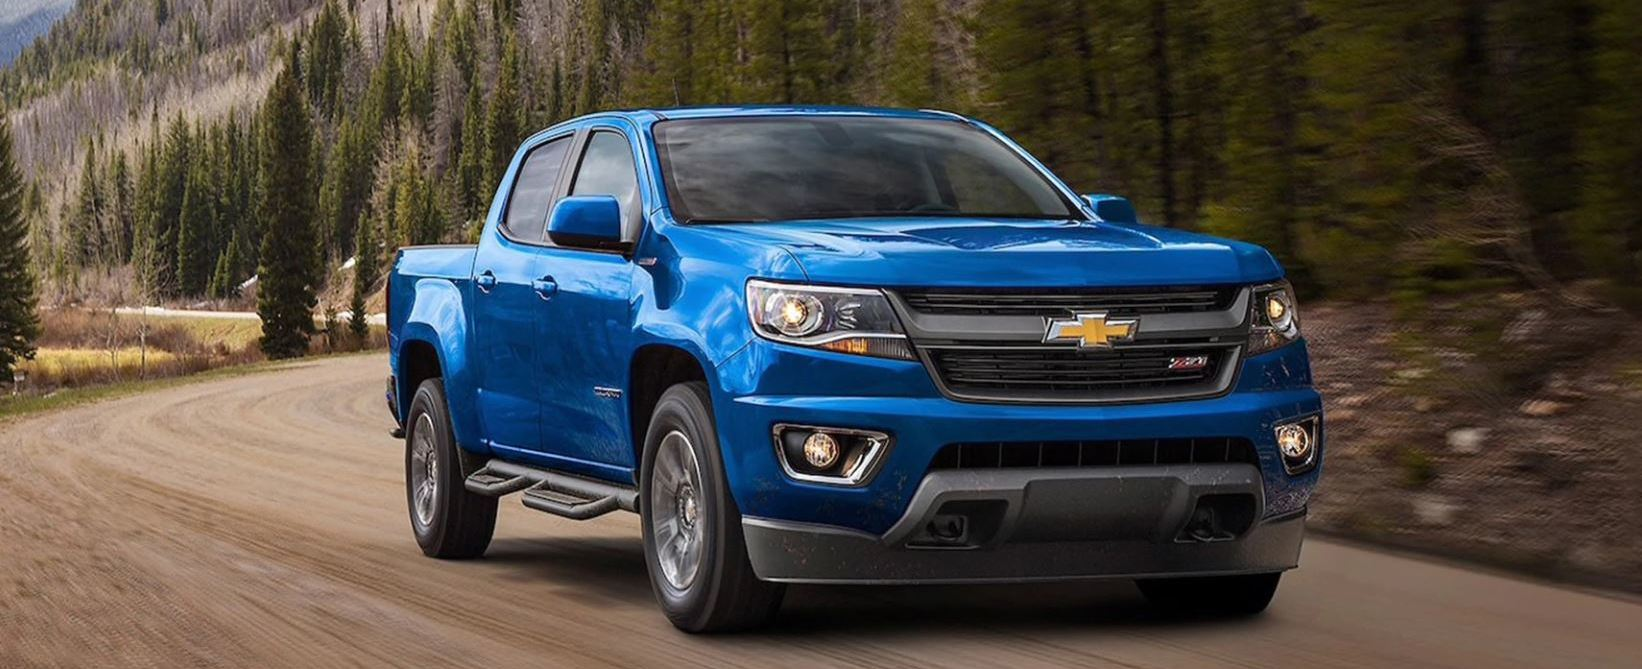 2020 Chevrolet Colorado for Sale near St. Johns, MI